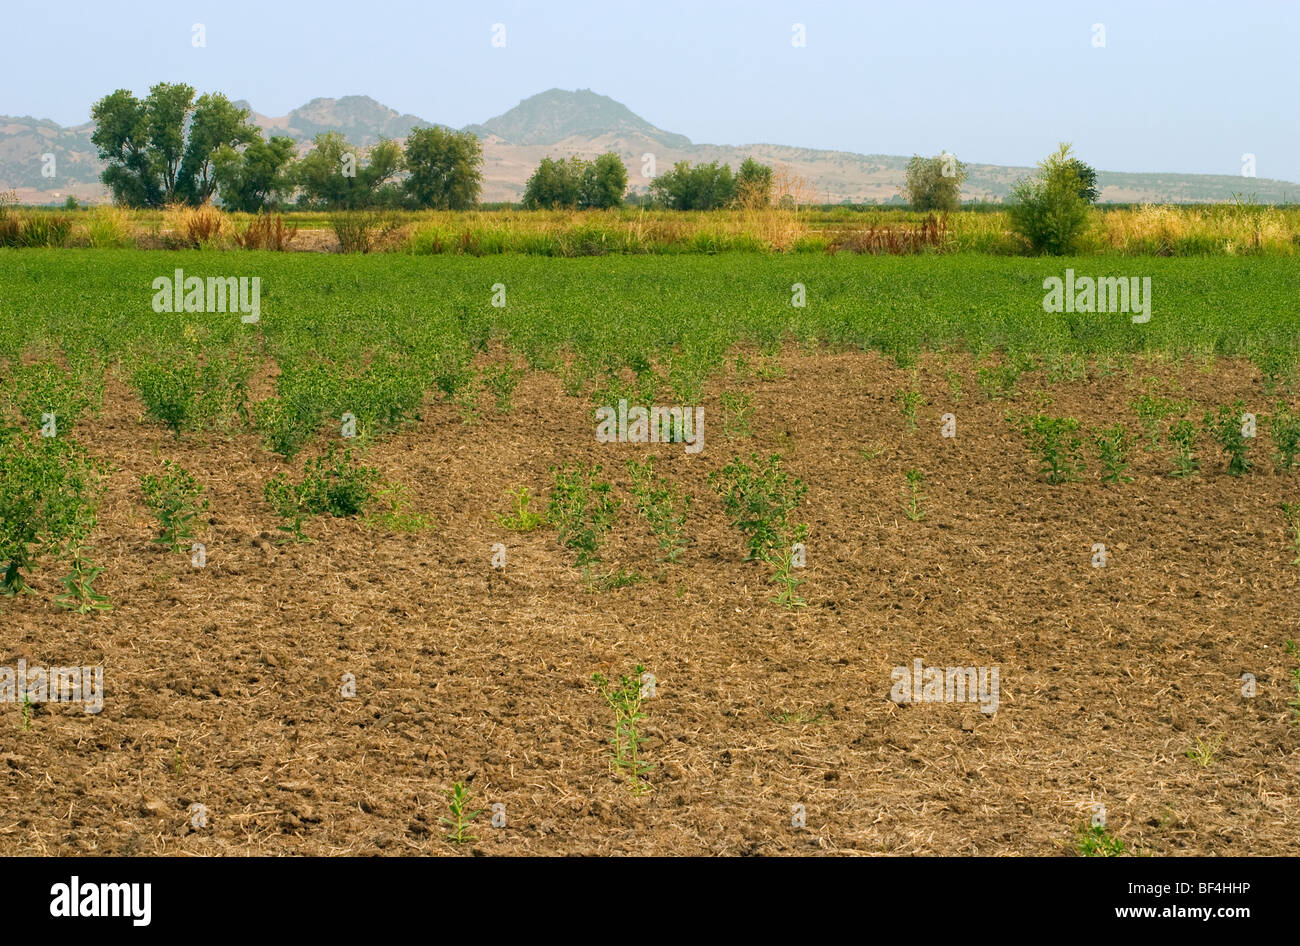 A dryland safflower crop that was dependent on spring rain that didn't arrive for germination suffers from drought - Stock Image